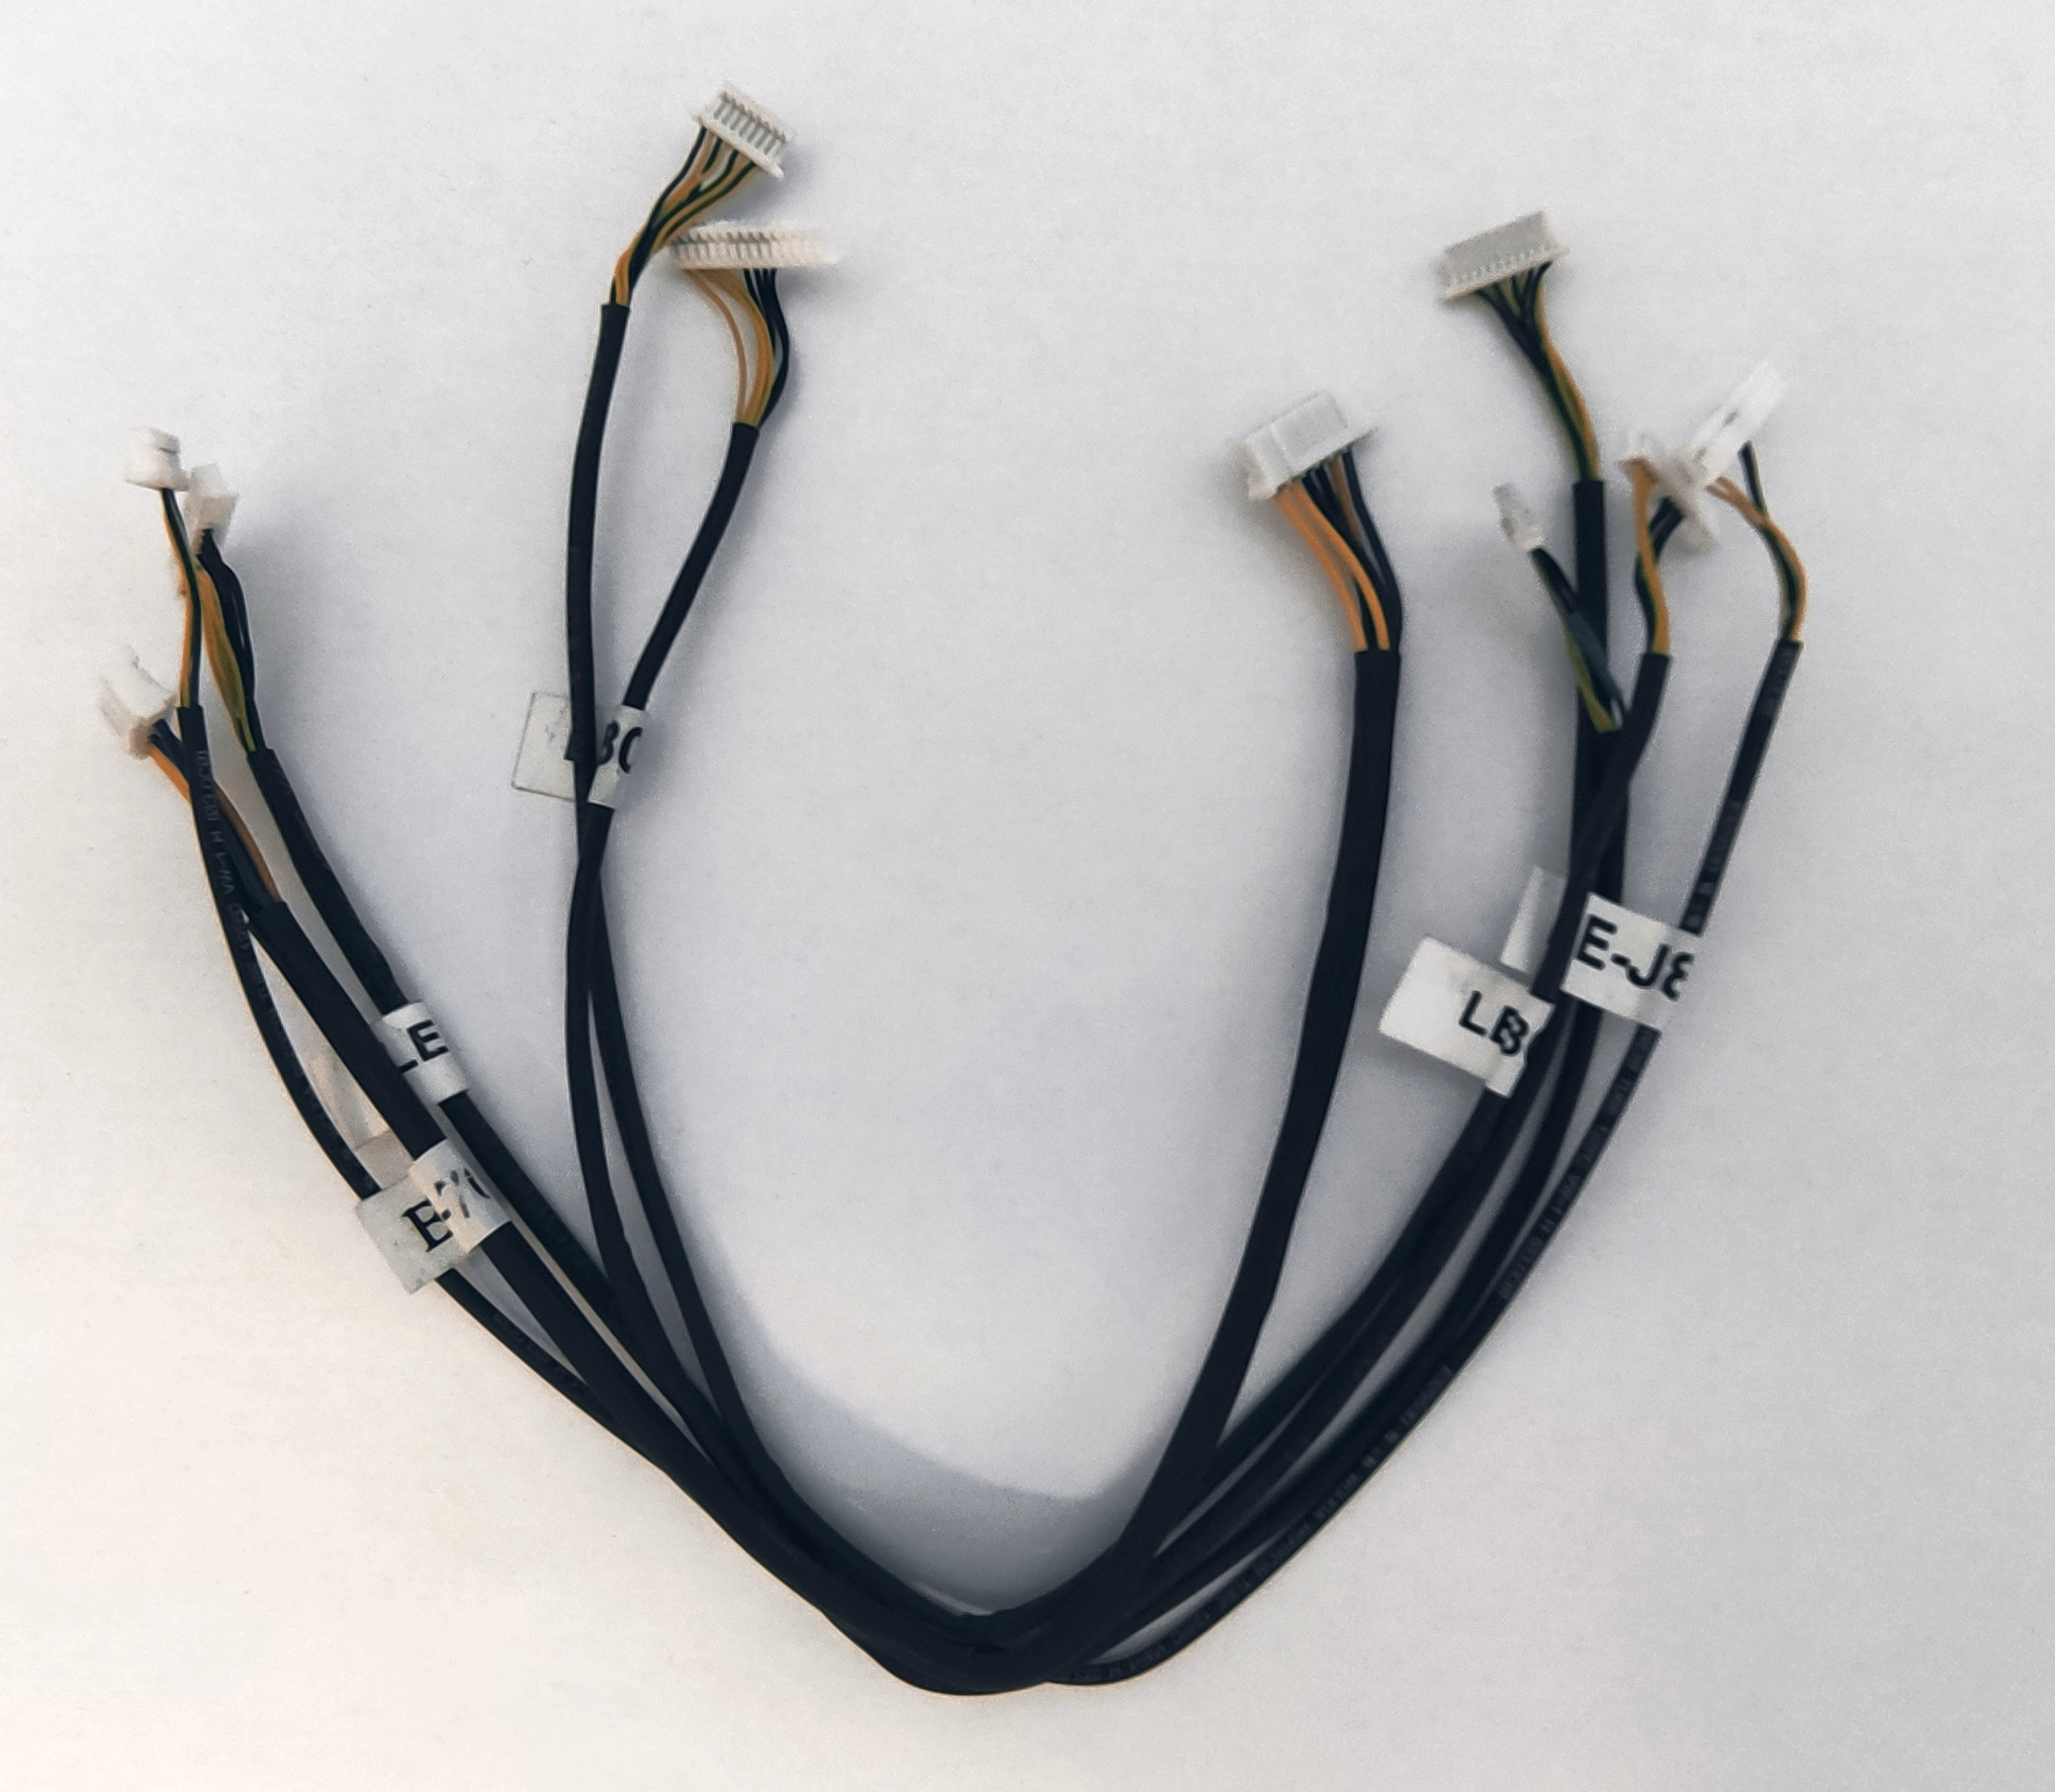 BT-cable-70751